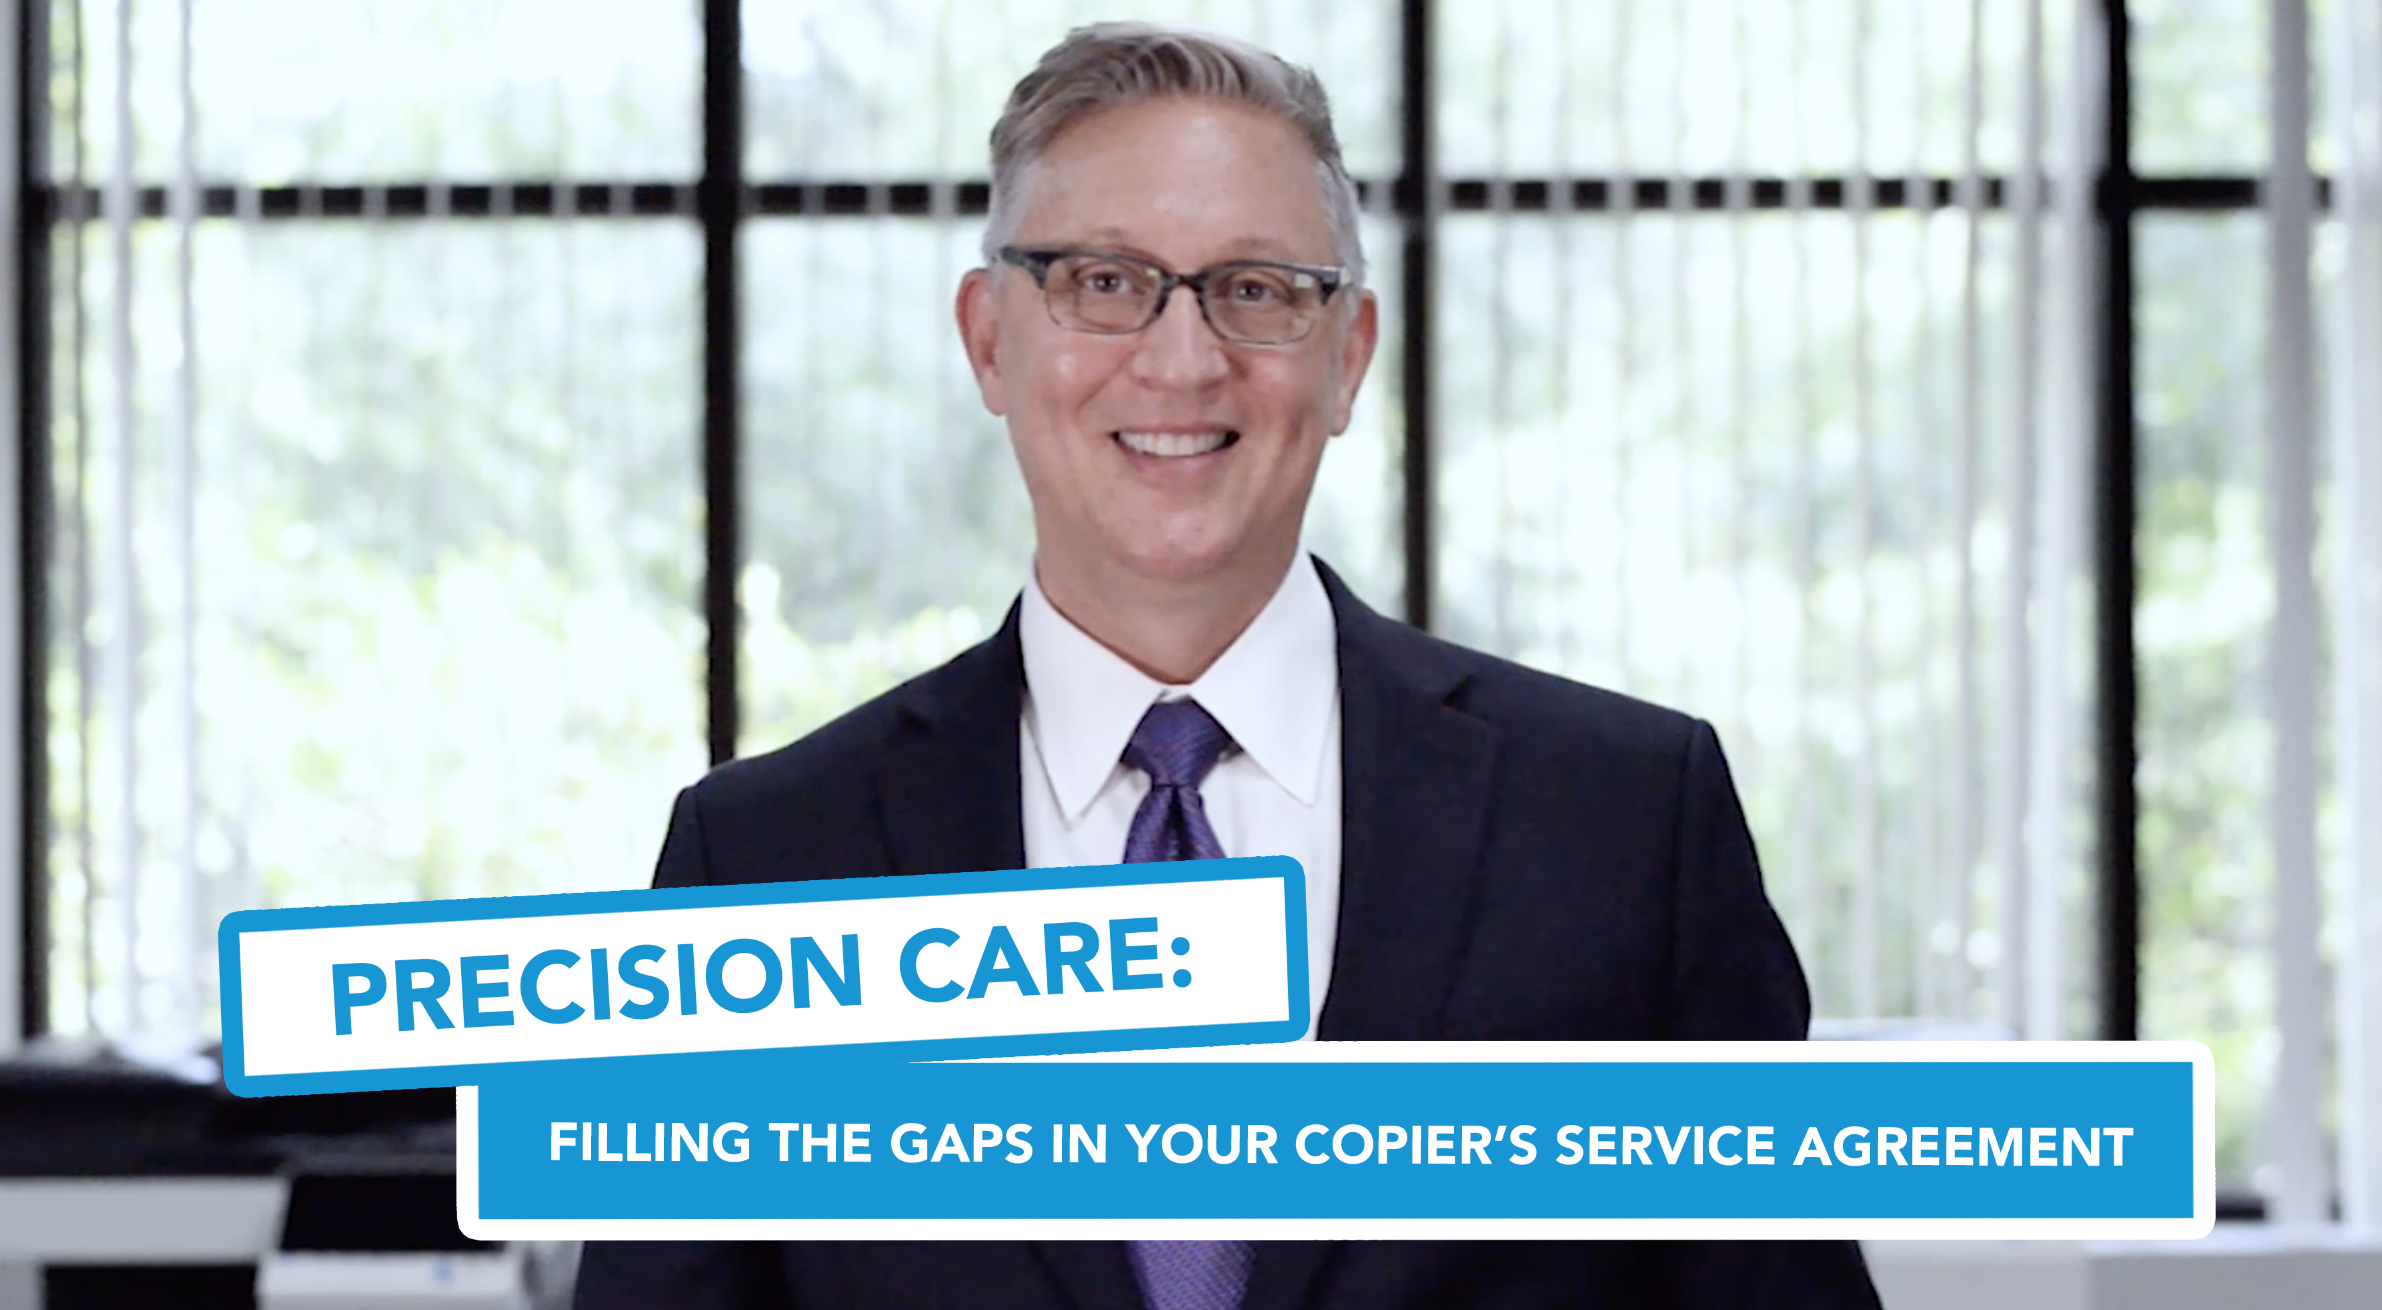 Precision Care: Filling the Gaps in Your Copier's Service Agreement